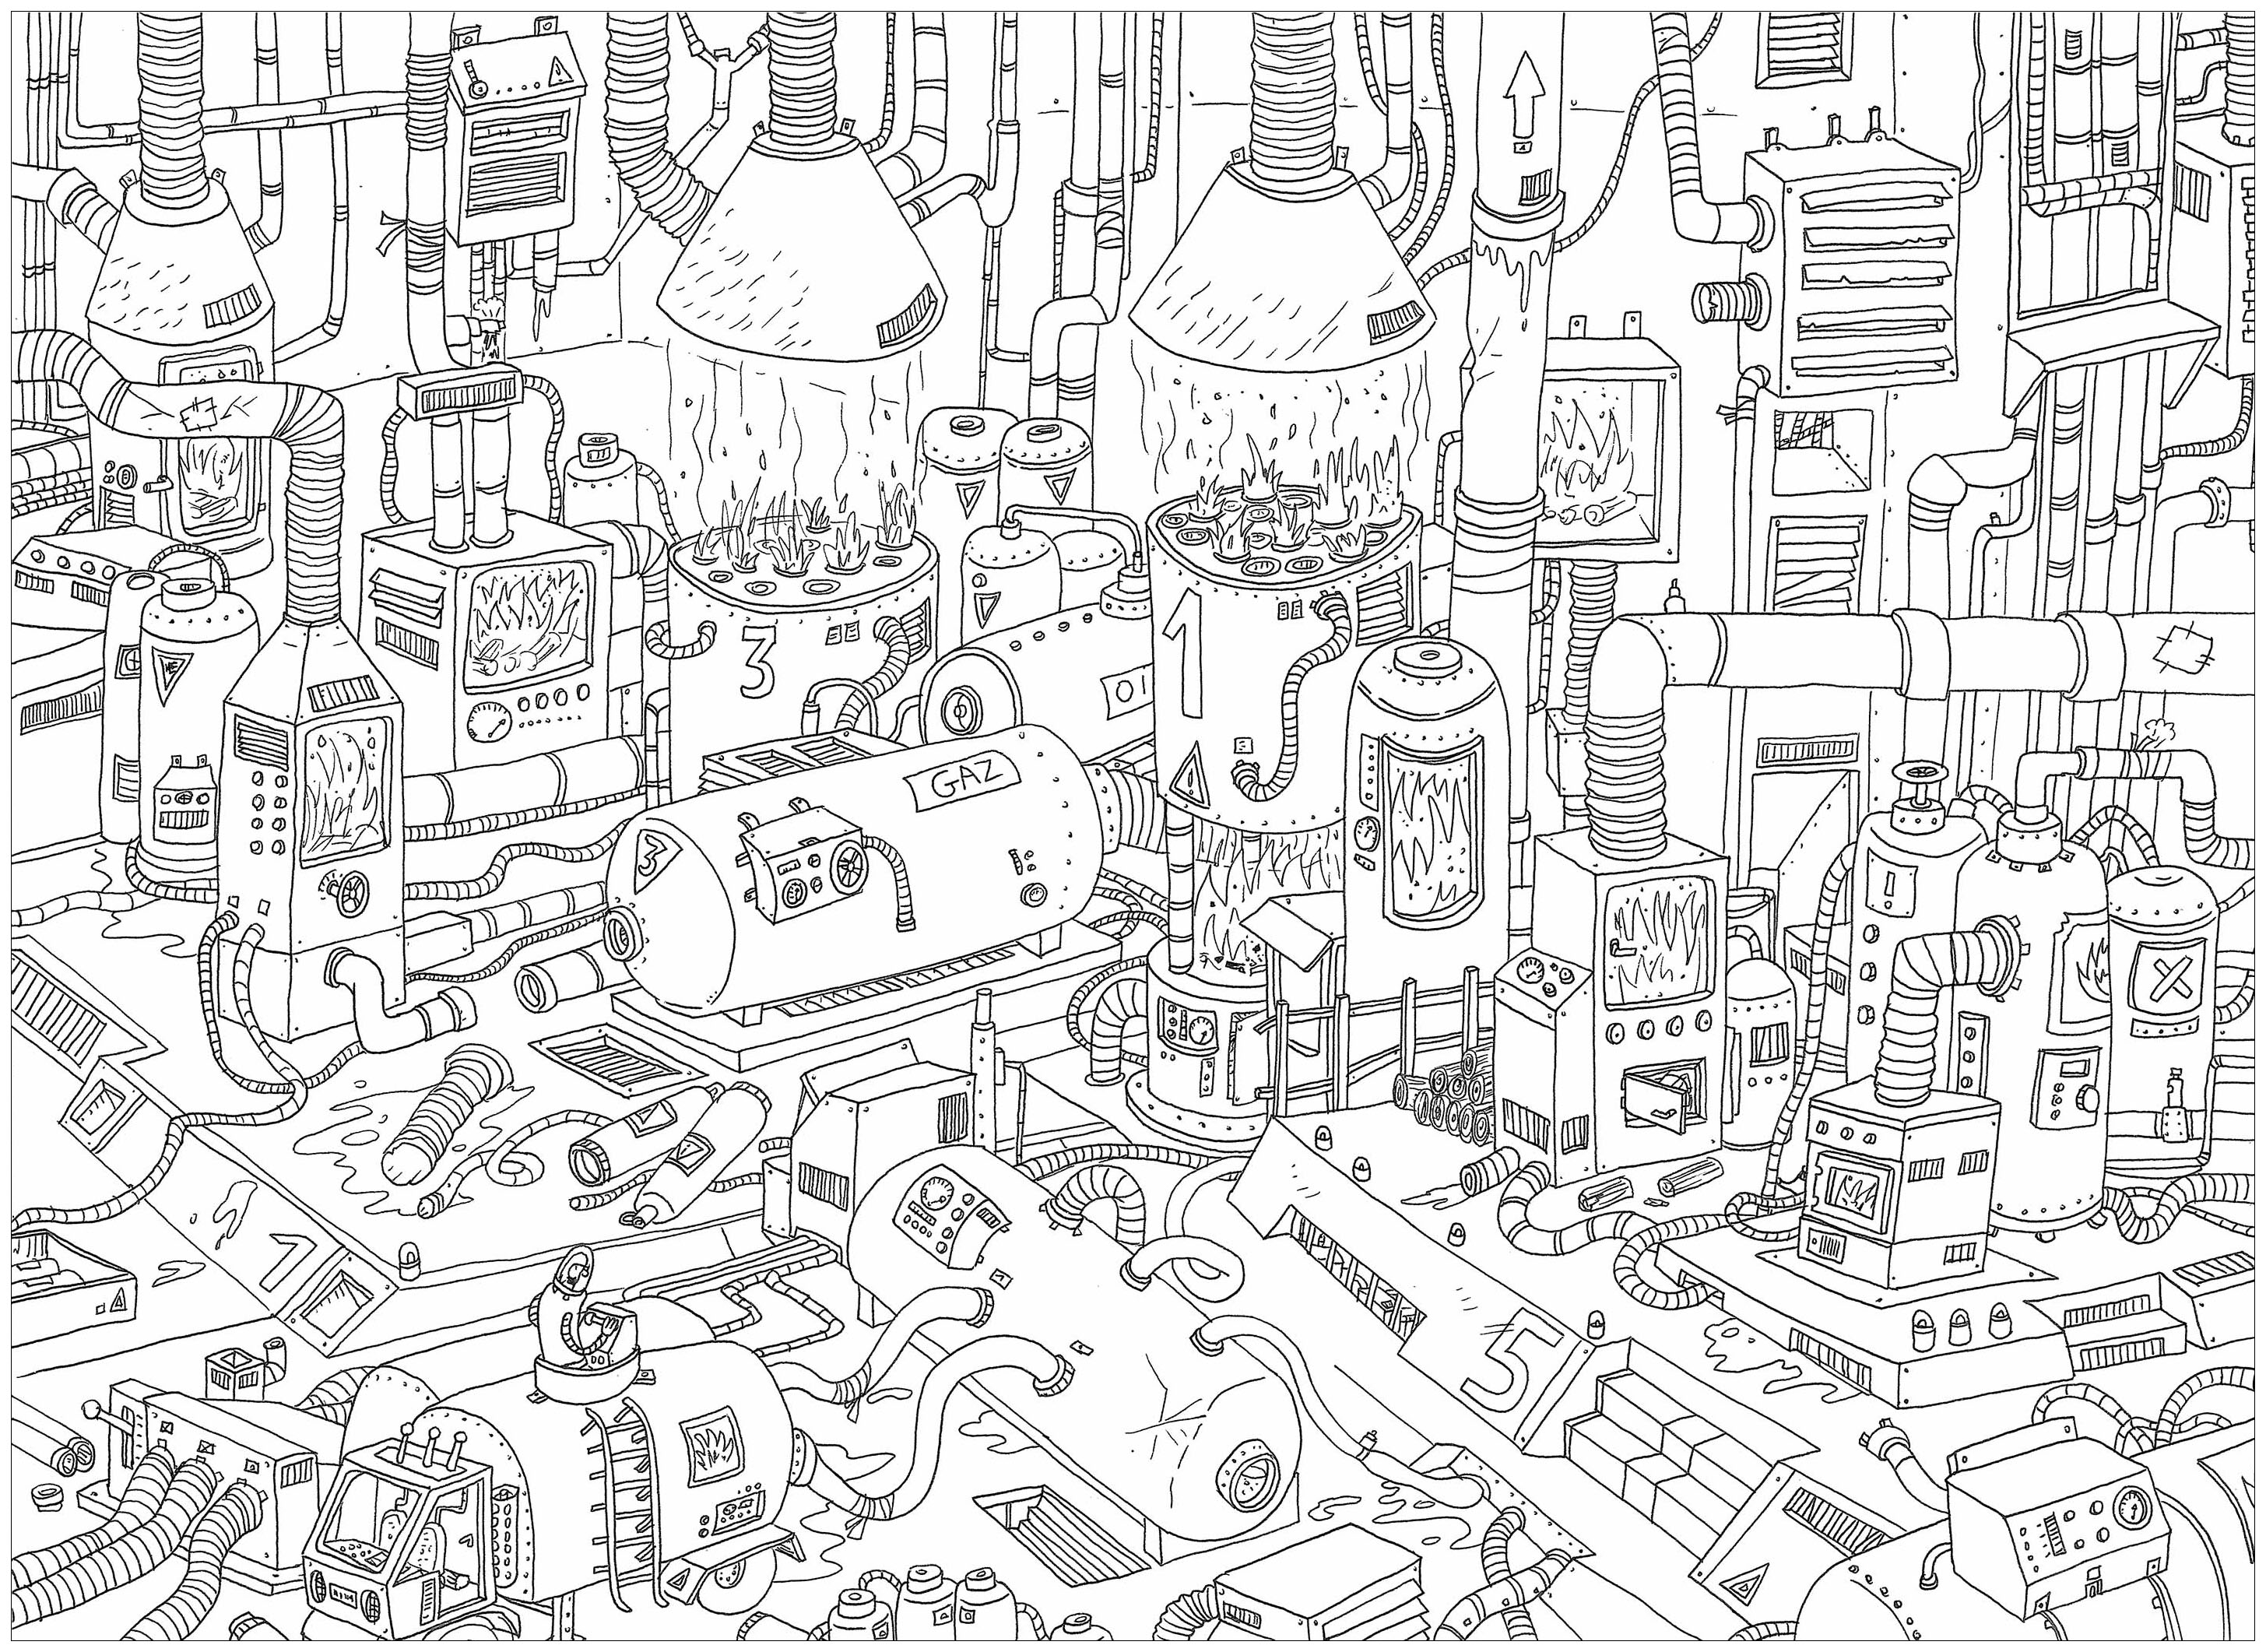 'Gas', a complex coloring page, 'Where is Waldo ?' style